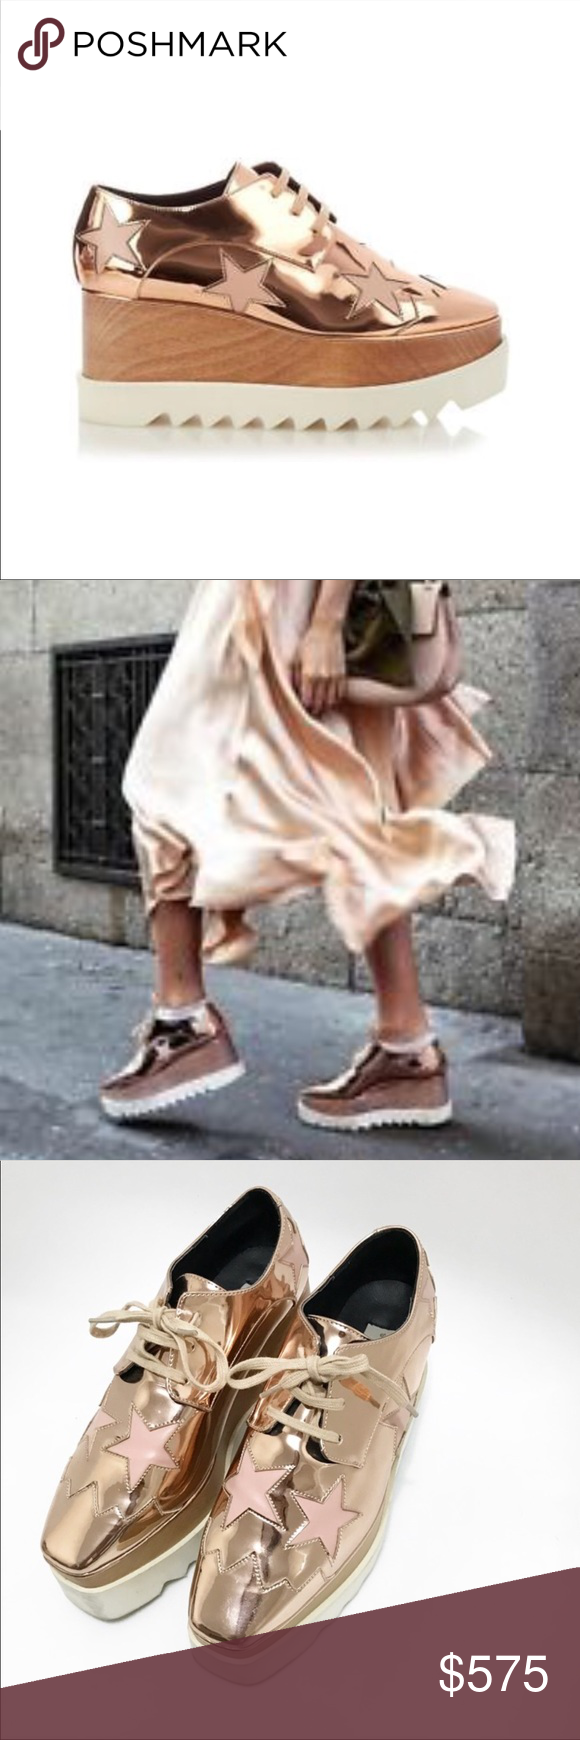 f32d34be5a5 Stella McCartney Elyse Star Rose Gold Platform Oxford-style shoes in copper  tone featuring contrasting